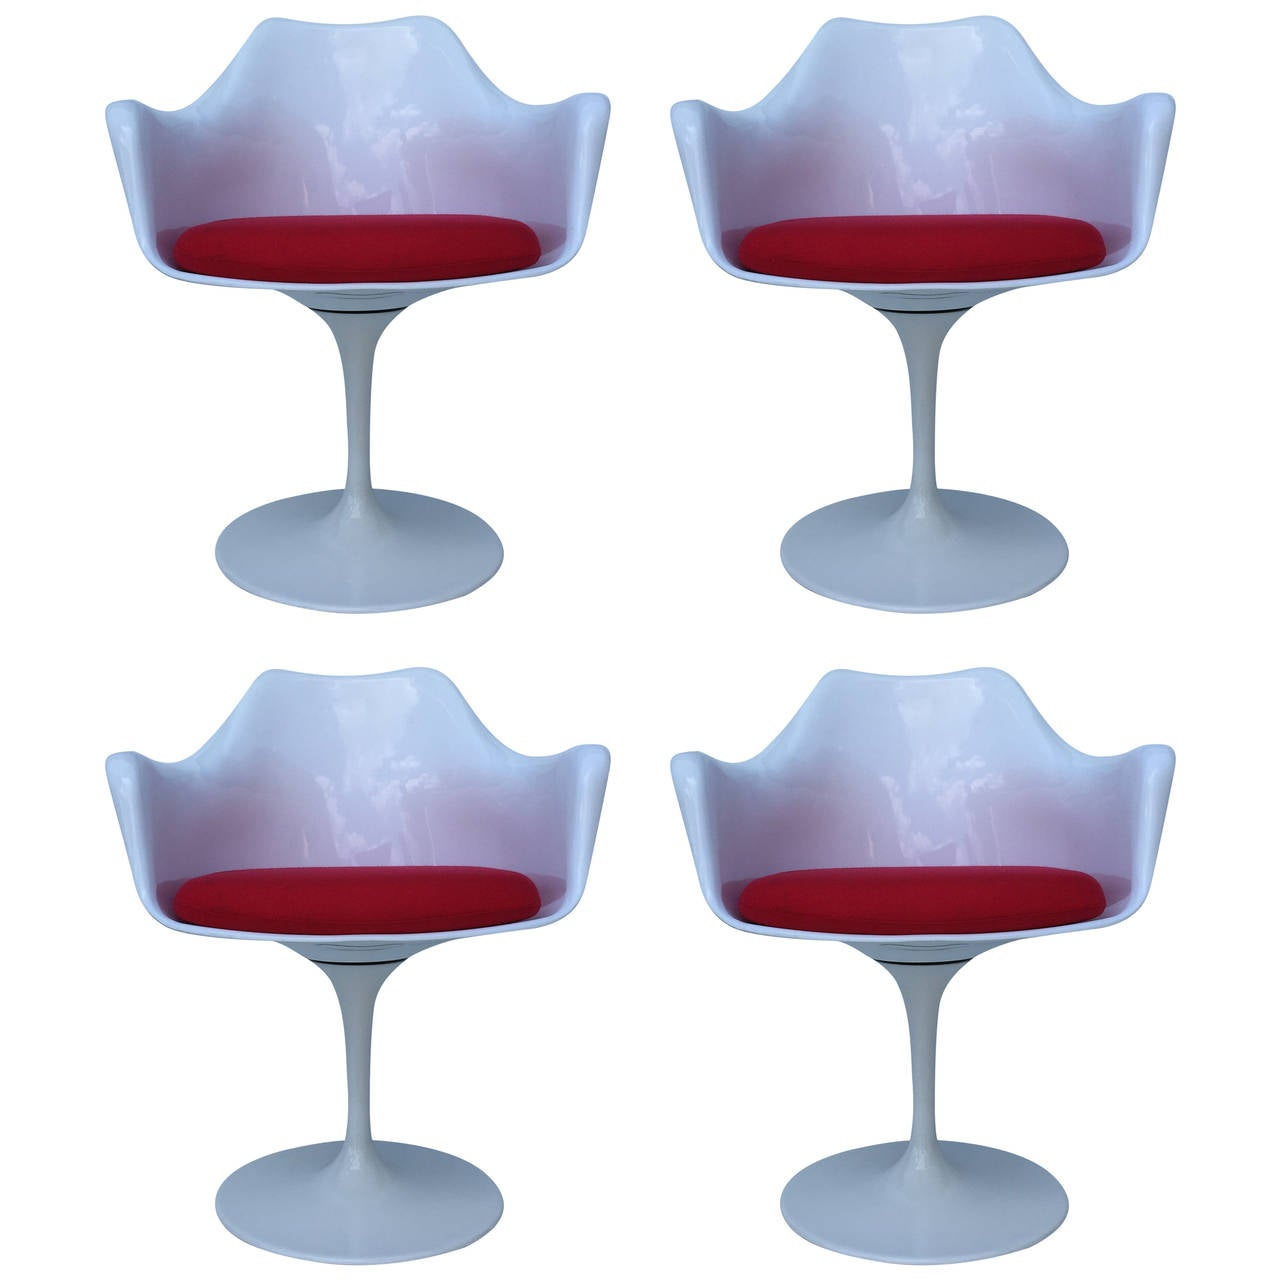 Four italian tulip chairs for sale at 1stdibs - Tulip chairs for sale ...